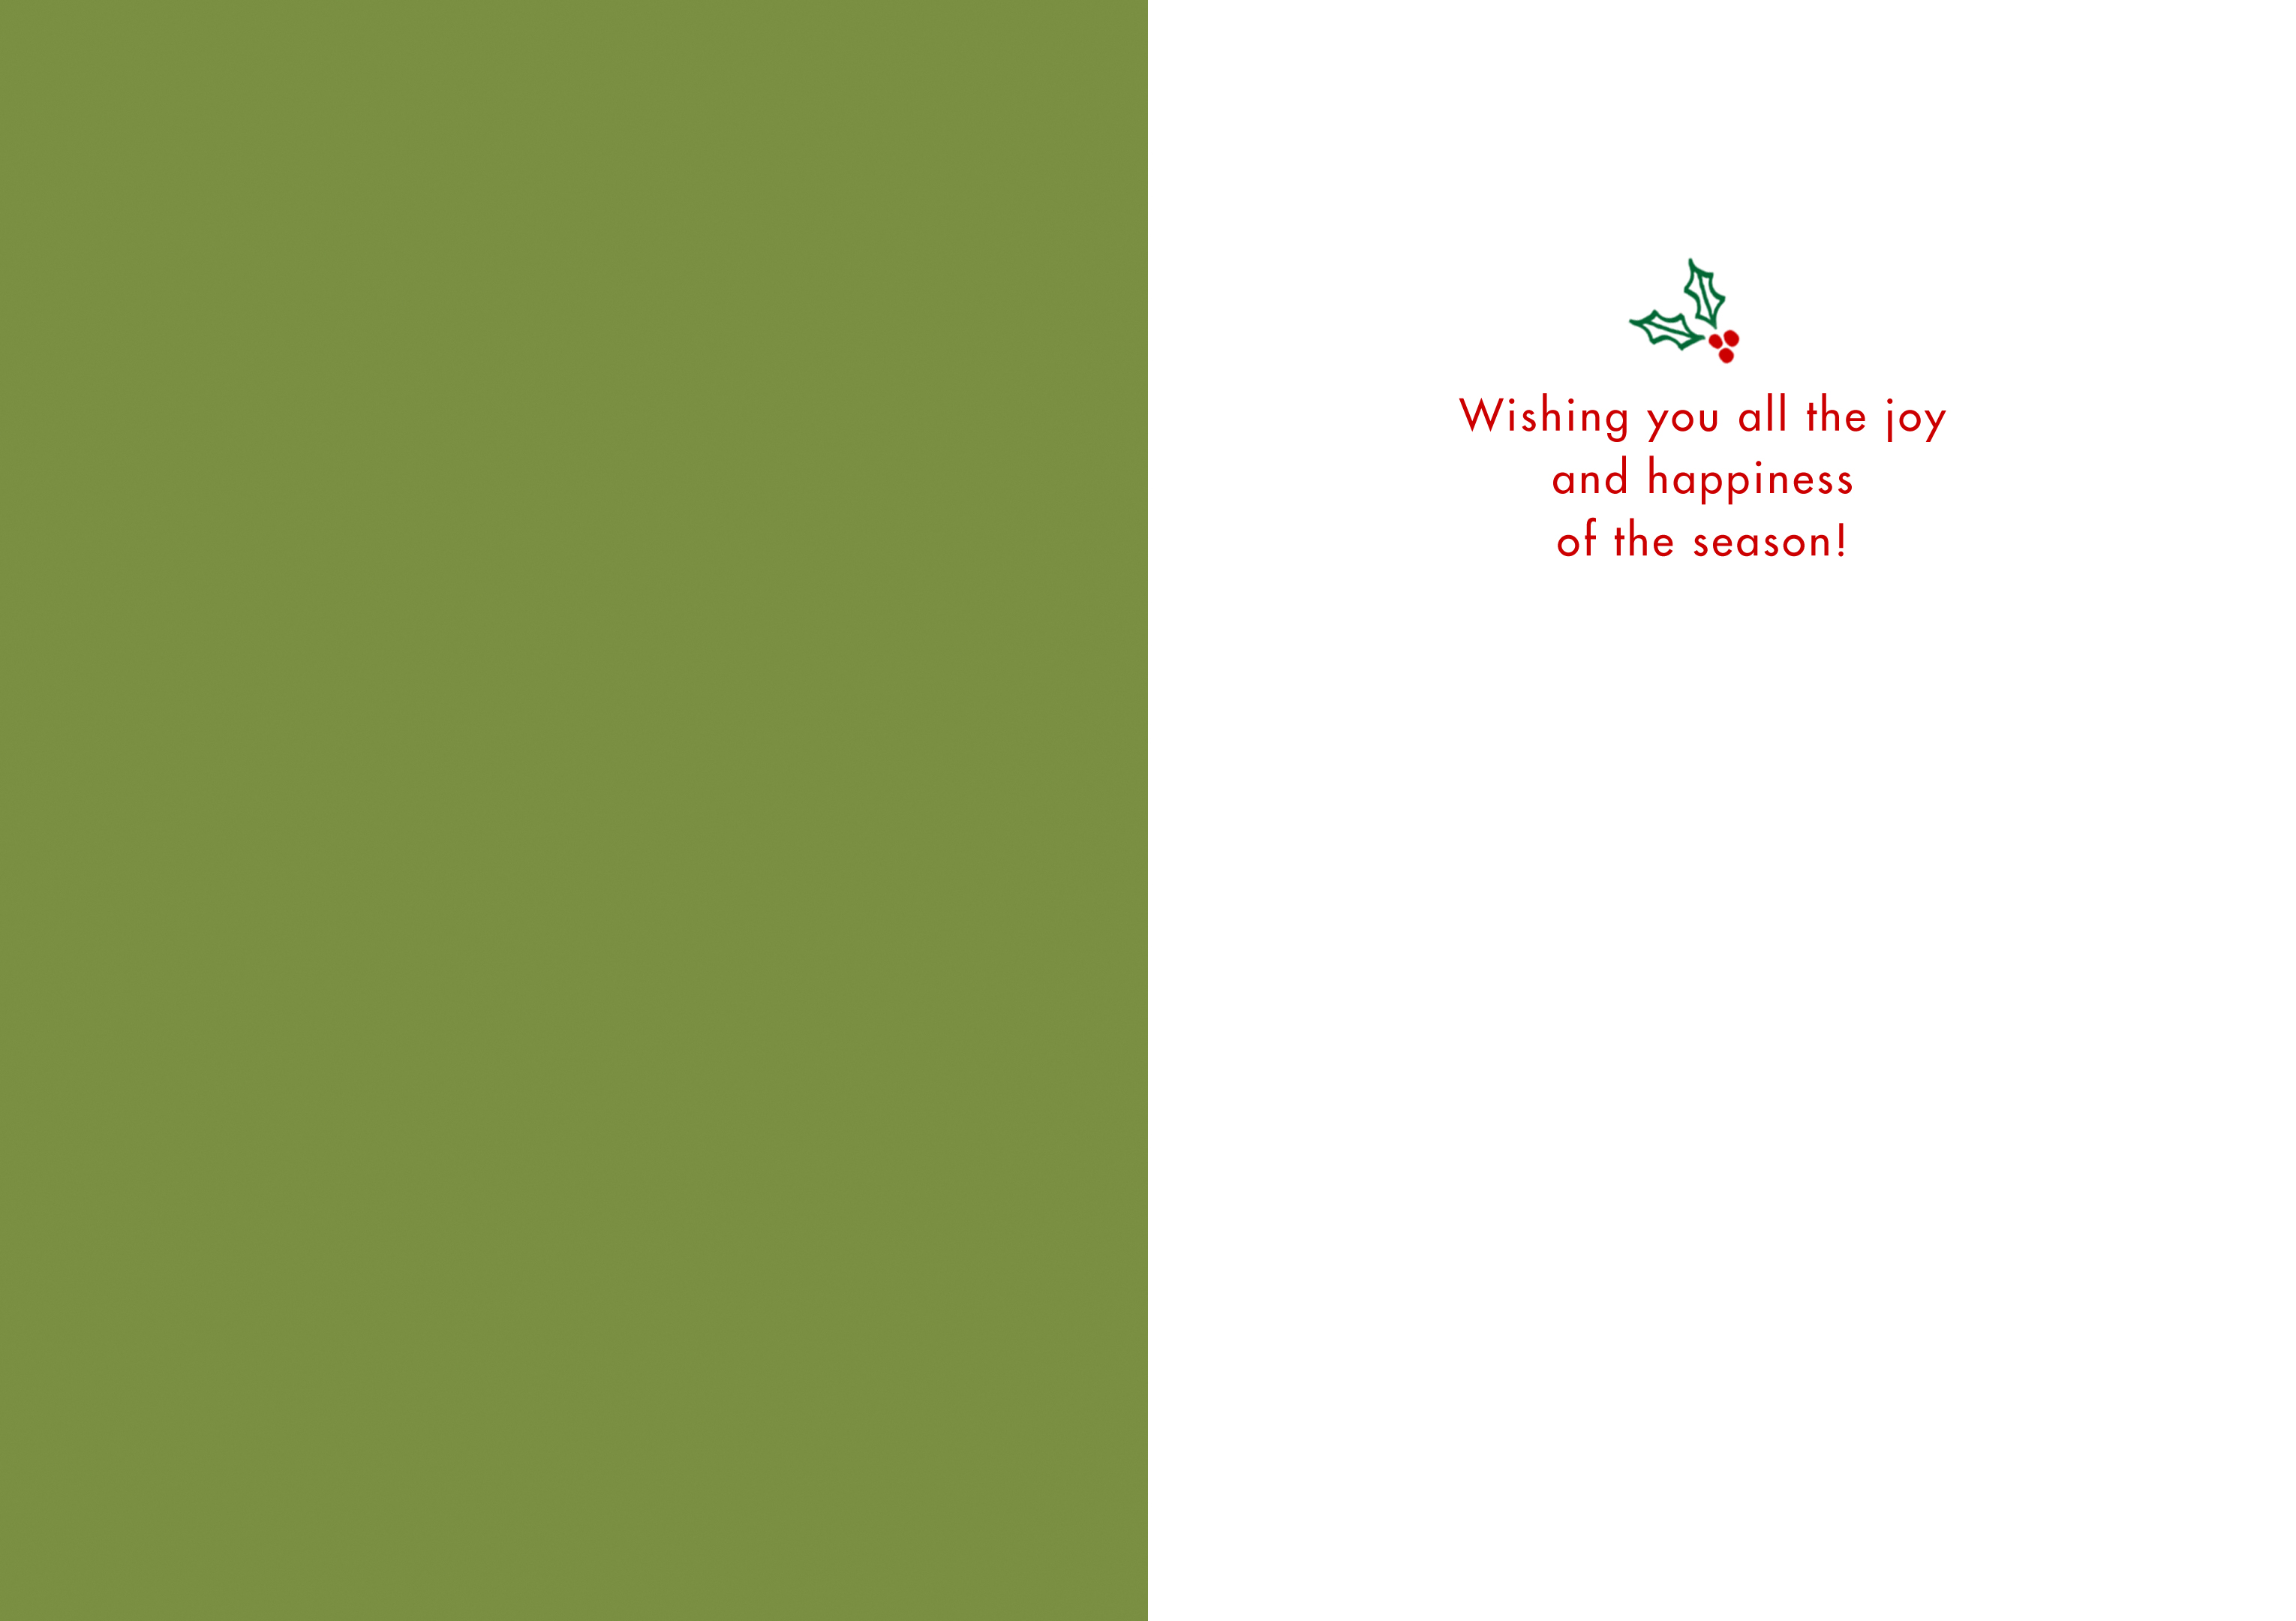 Design Your Own Christmas Cards, Postcards, or Invitations - Cardstore